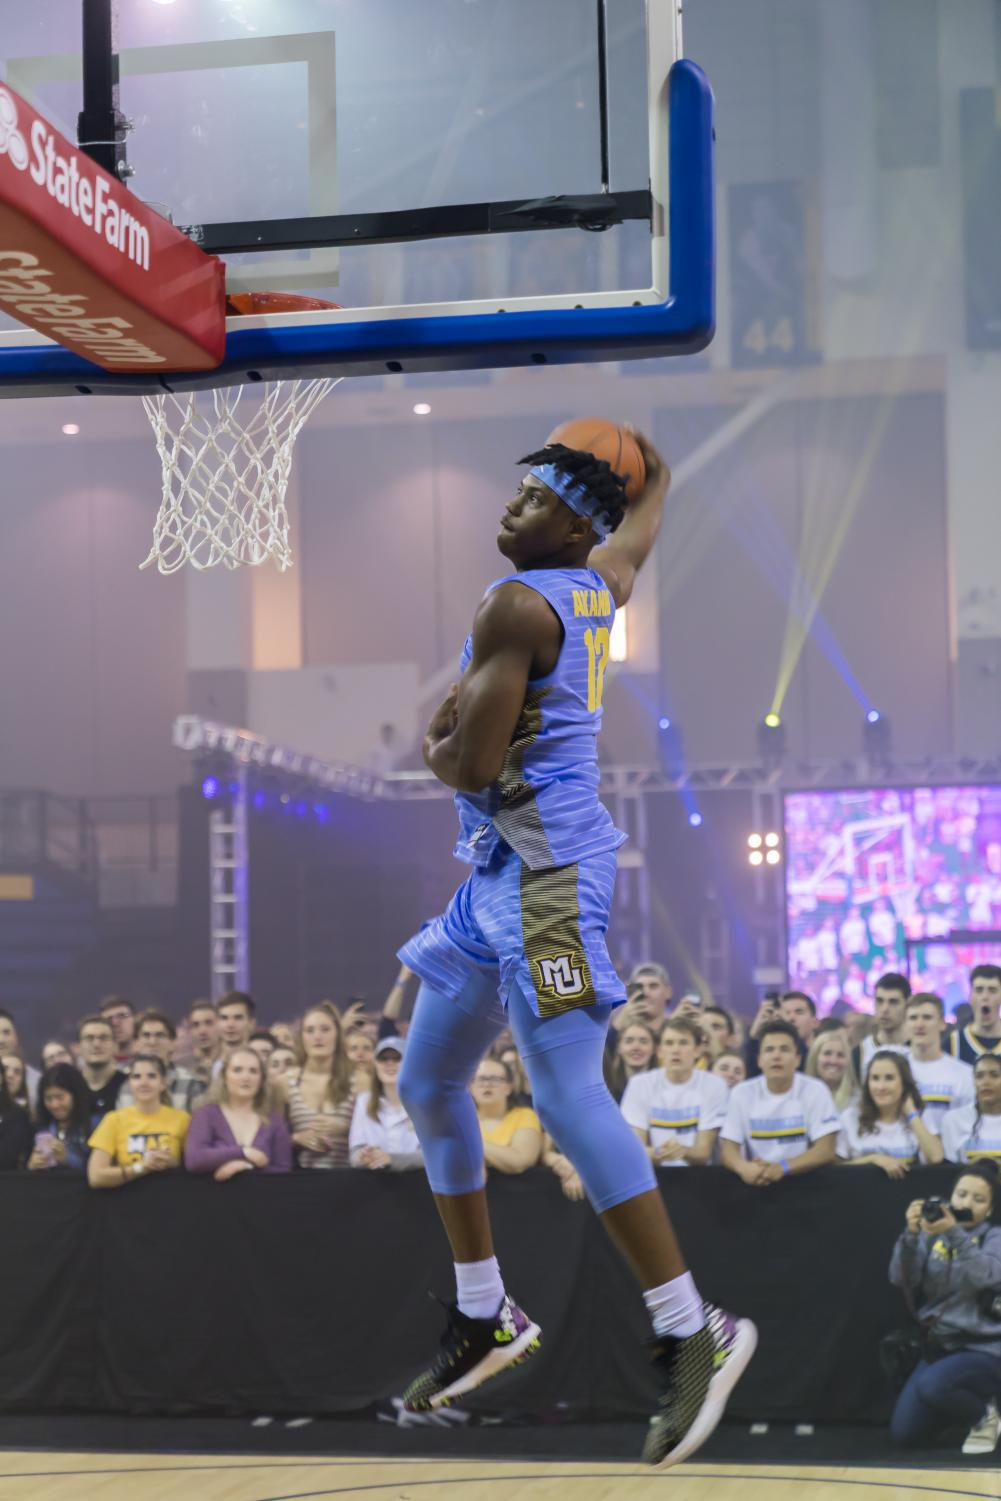 Freshman guard Dexter Akanno competes in the Marquette Madness dunk contest Oct. 4 at the Al McGuire Center.